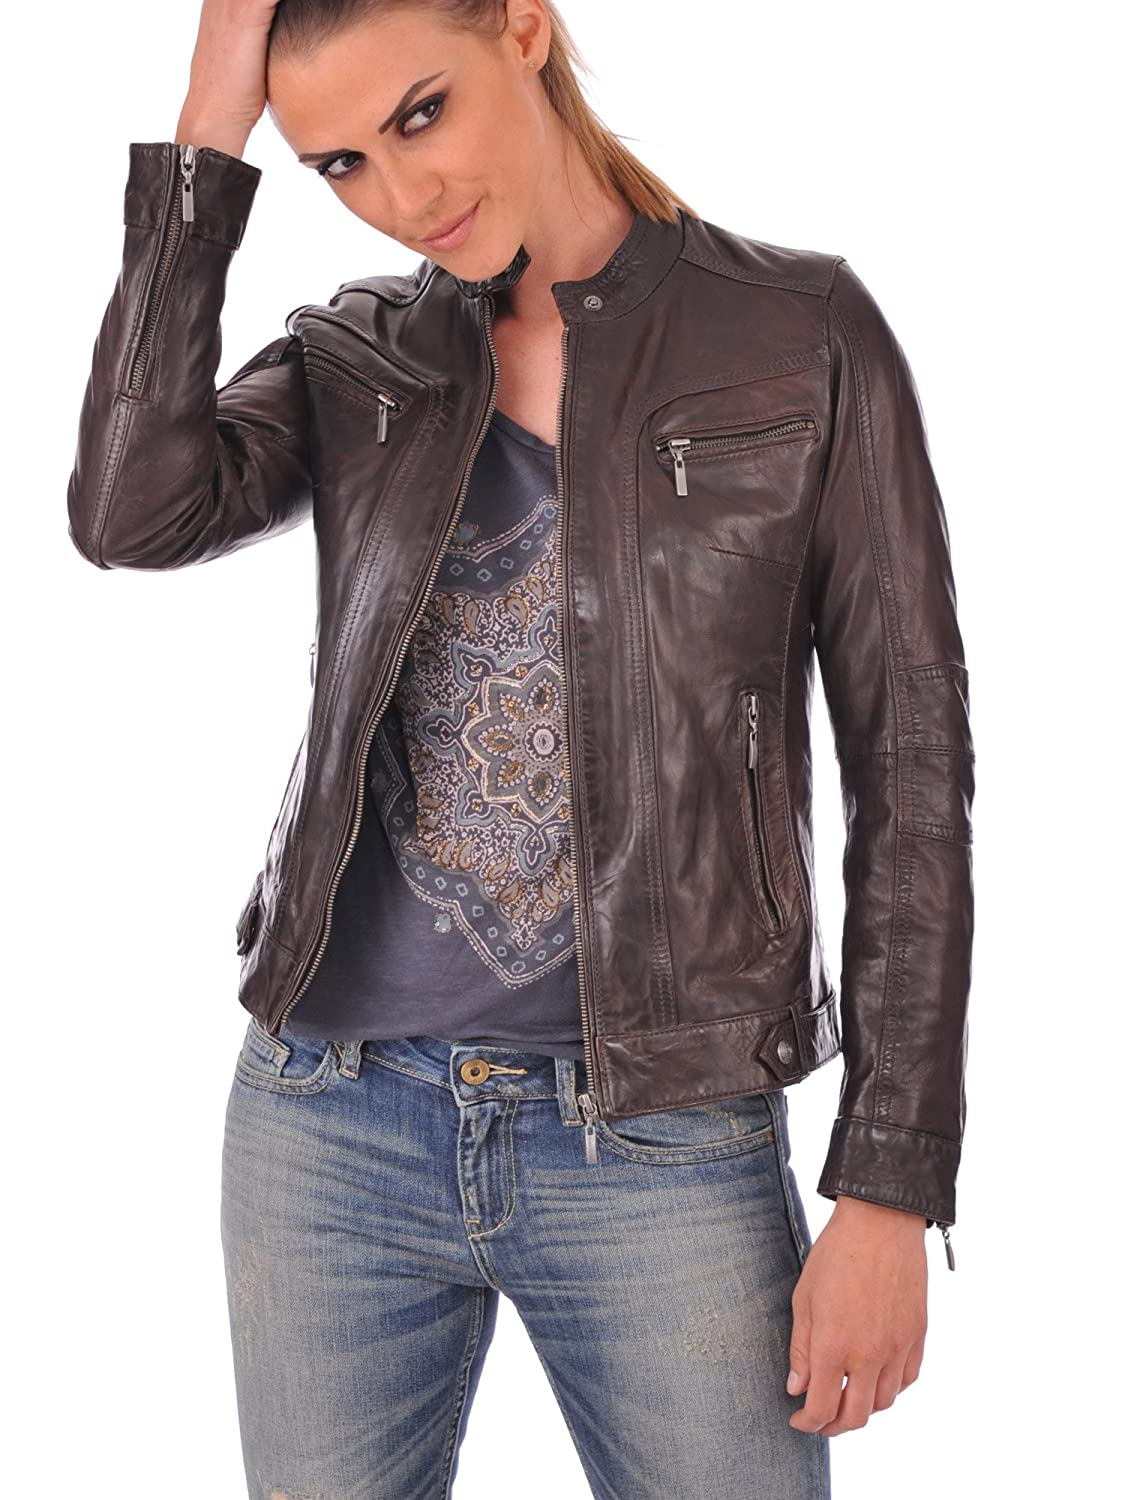 Brown 04 DOLLY LAMB Womens Leather Jacket Genuine Lambskin Womens Brown Biker Leather Jacket k XS to XXL